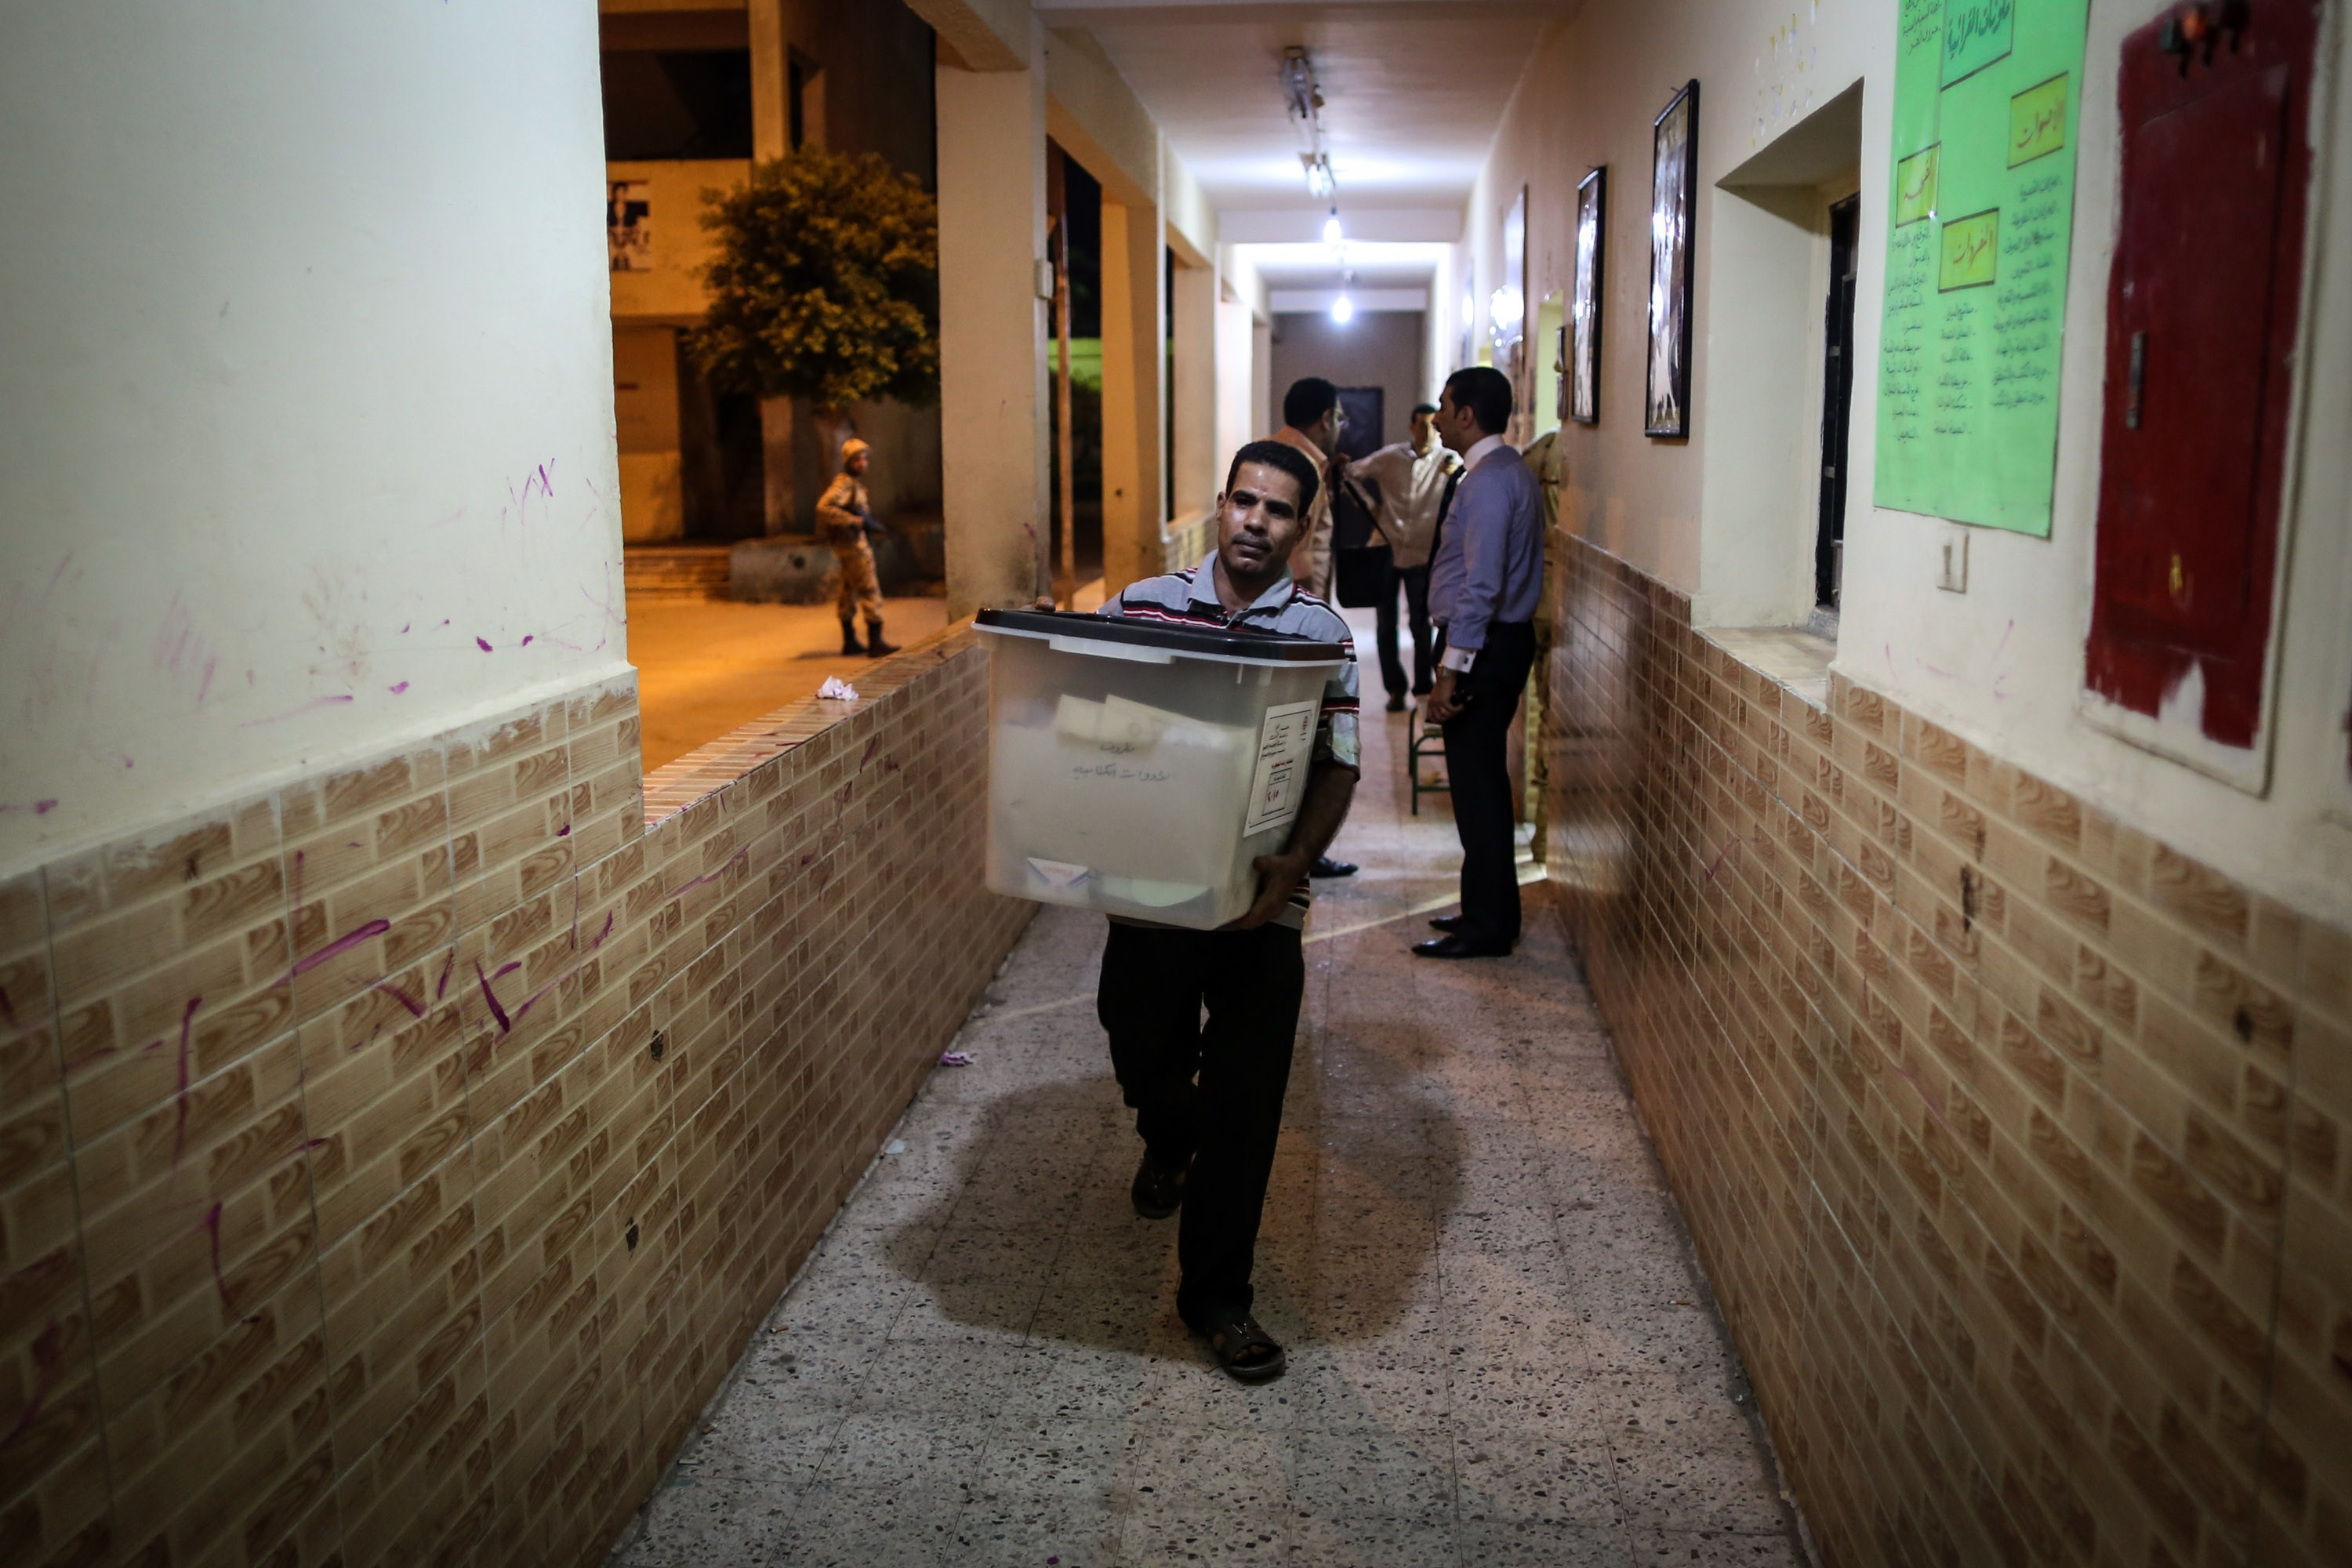 An Egyptian man carries a ballot box after a polling station closed at the end of the first day of the two-day election for a new president in the capital Cairo on May 26, 2014. Egyptians begin voting in a new presidential election which Sisi, who ousted the elected Islamist leader, is expected to easily win amid calls for stability and economic recovery.   (AFP PHOTO/MOHAMED EL-SHAHED)